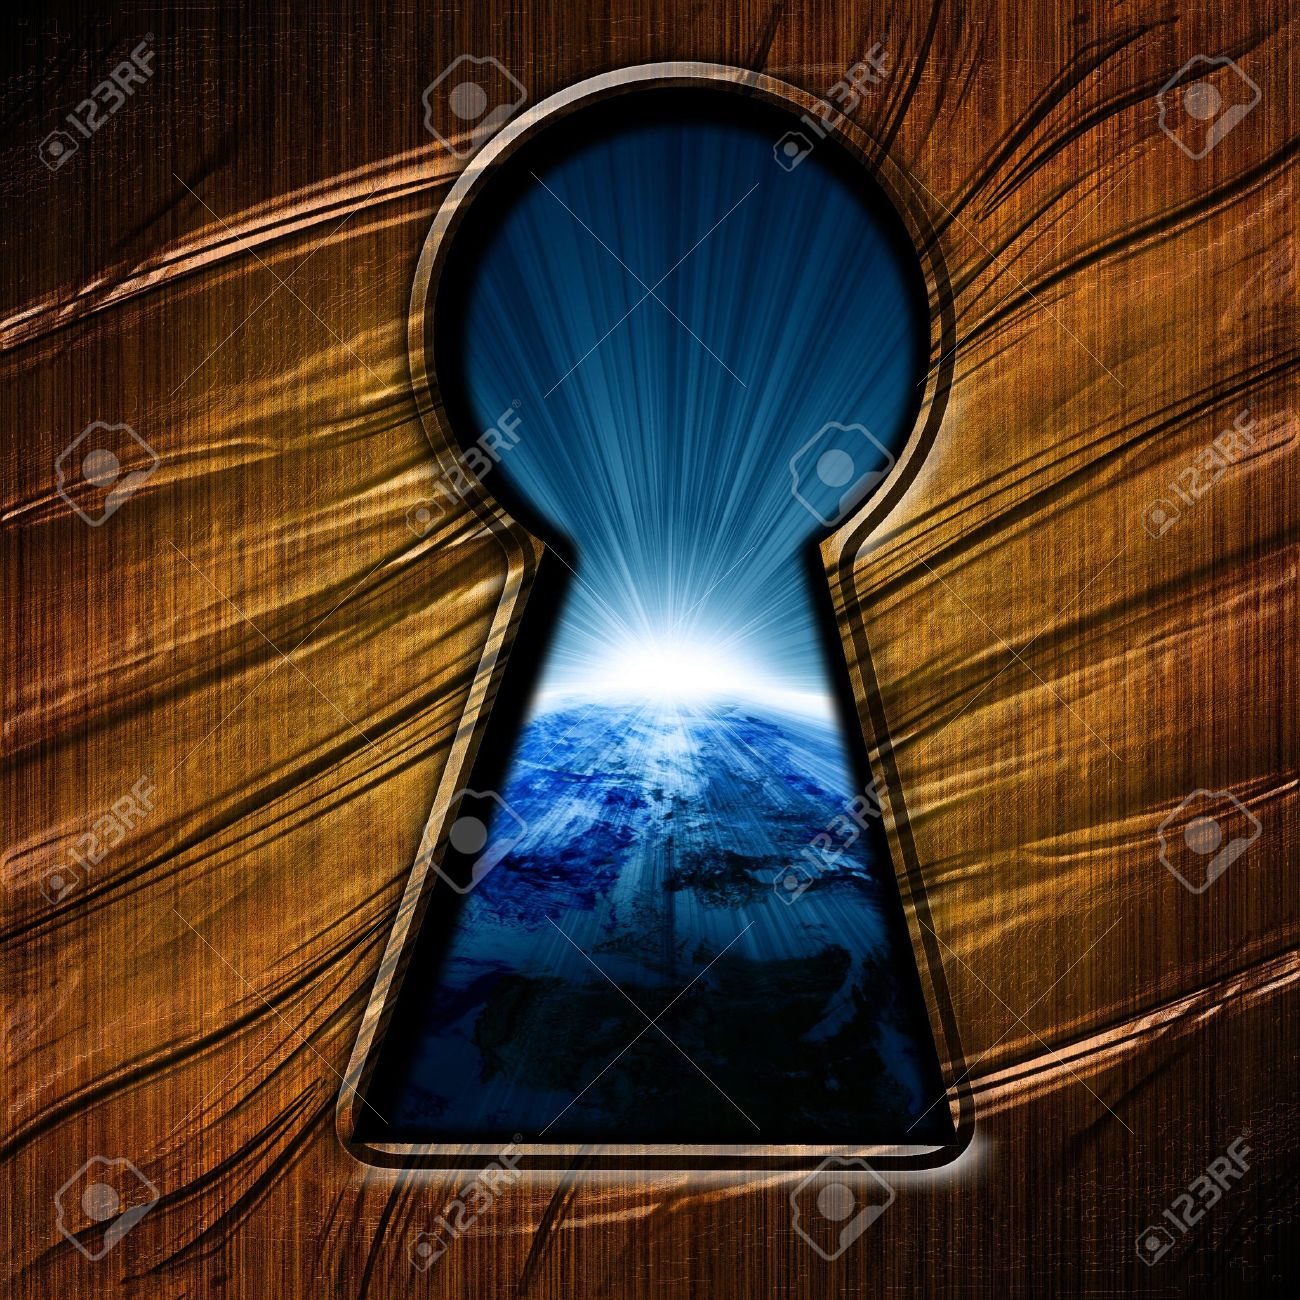 key hole with an outlook on planet earth Stock Photo - 4200193